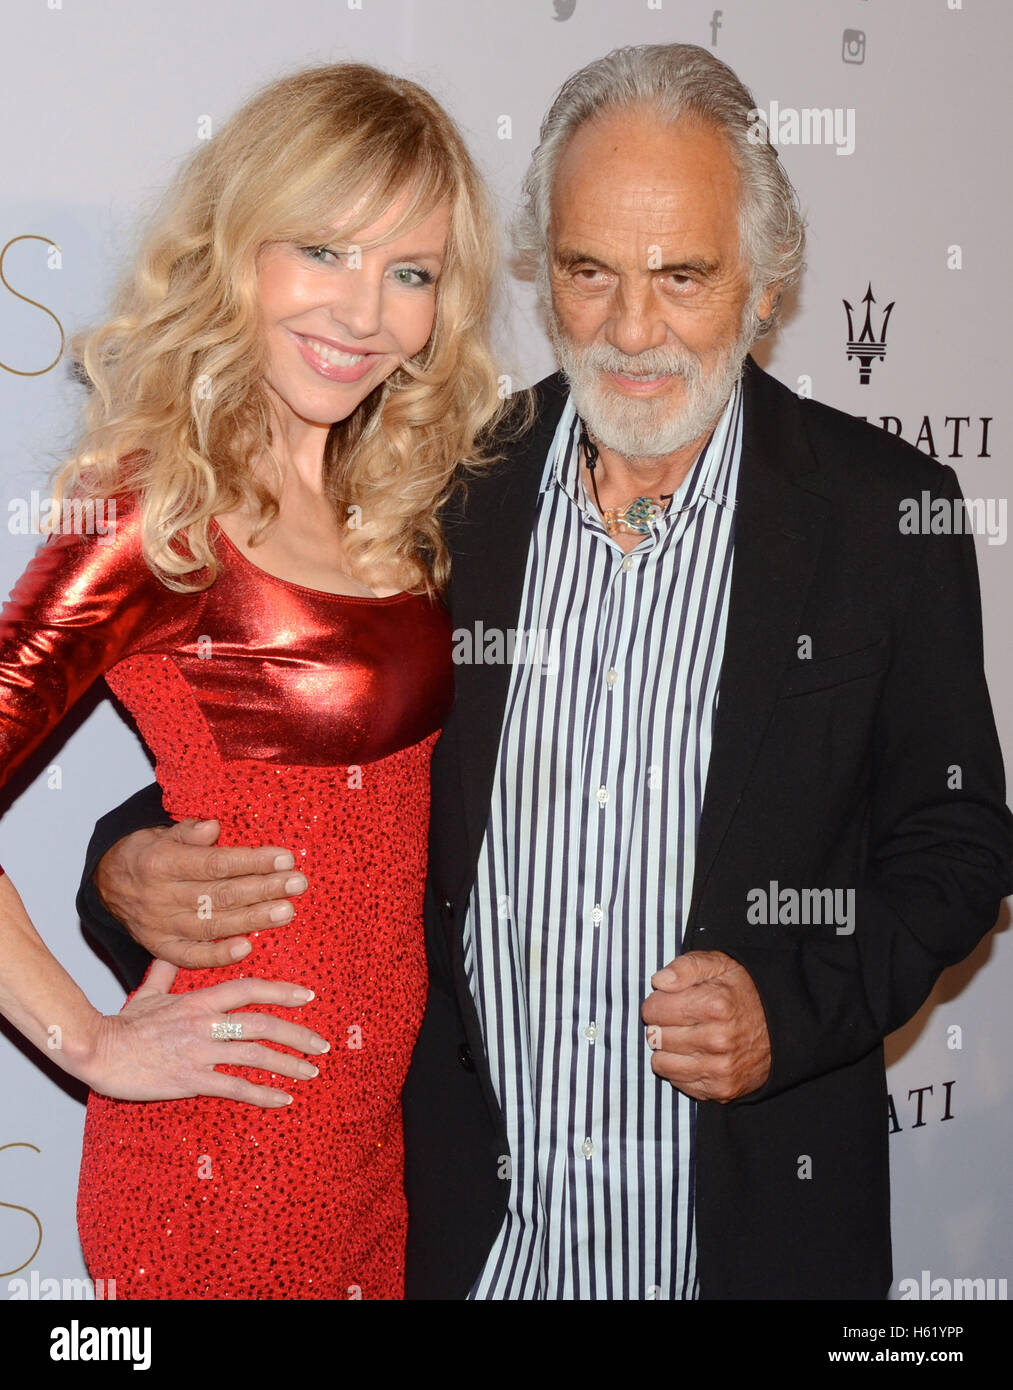 shelby chong ageshelby chong age, shelby chong 2016, shelby chong young, shelby chong 1980, shelby chong imdb, shelby chong twitter, shelby chong wiki, shelby chong net worth, shelby chong instagram, shelby chong, shelby chong plastic surgery, shelby chong feet, shelby chong nice dreams, shelby chong hot, shelby chong 2015, shelby chong next movie, shelby chong plastic surgeon, shelby chong movies, shelby chong picture gallery, shelby chong pics